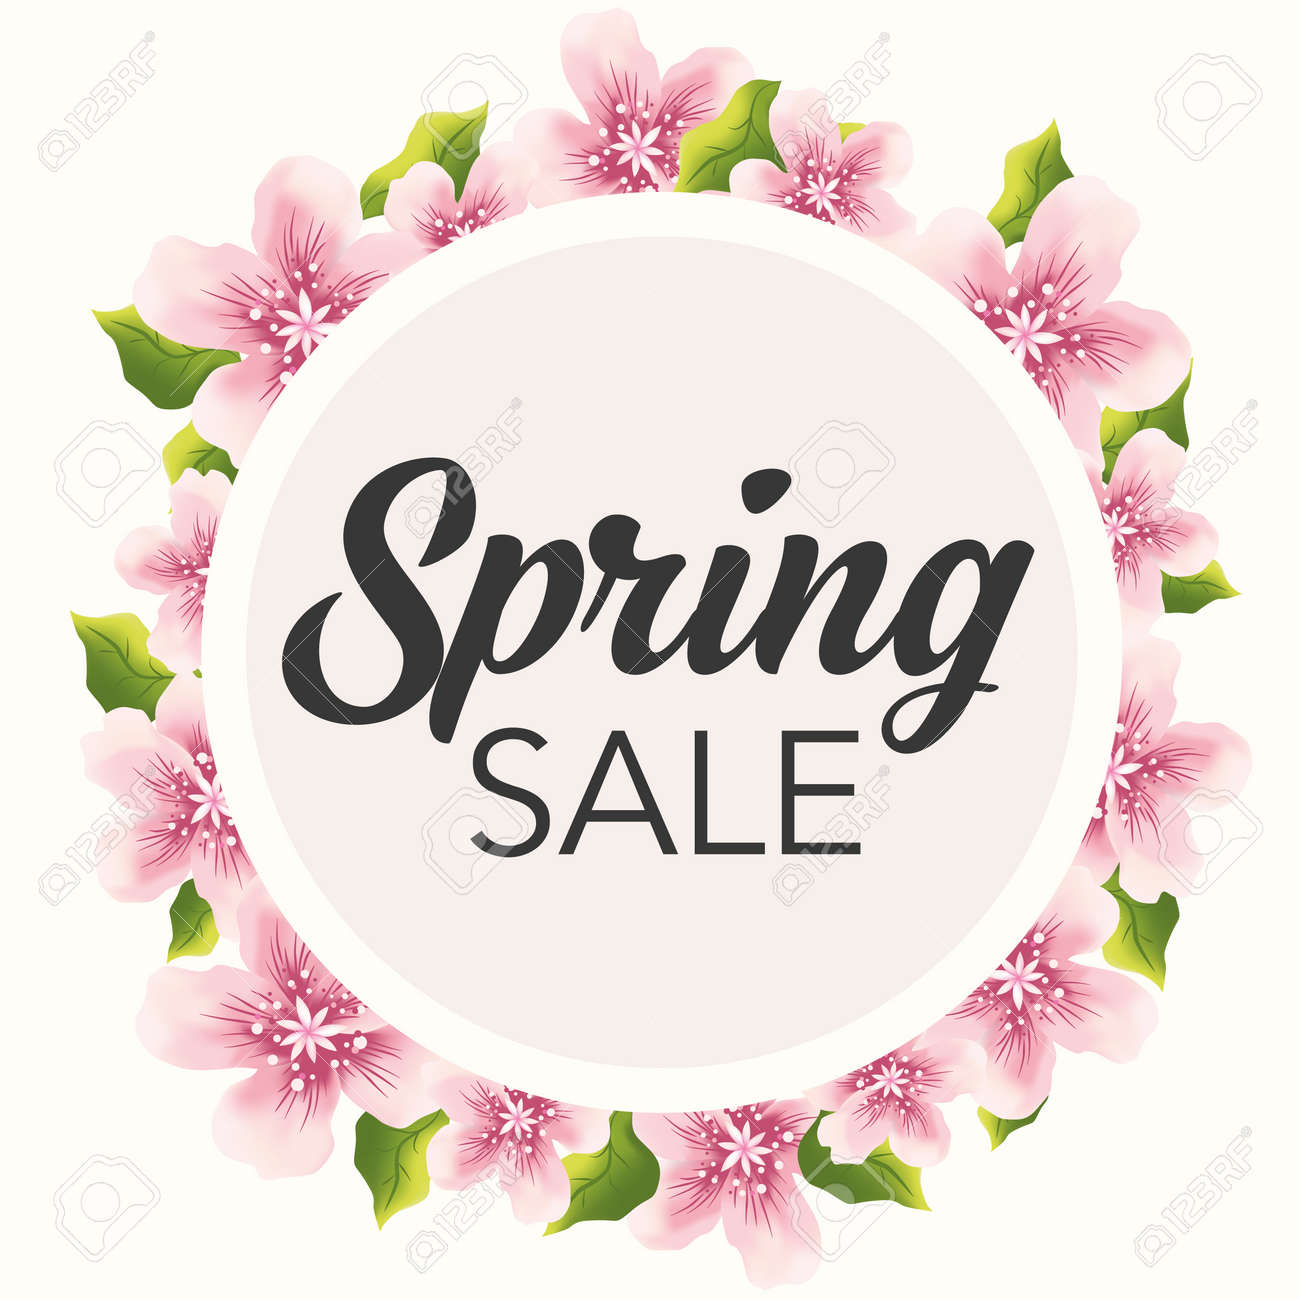 Spring Sale Graphic With Delicate Pink Flowers Royalty Free Cliparts